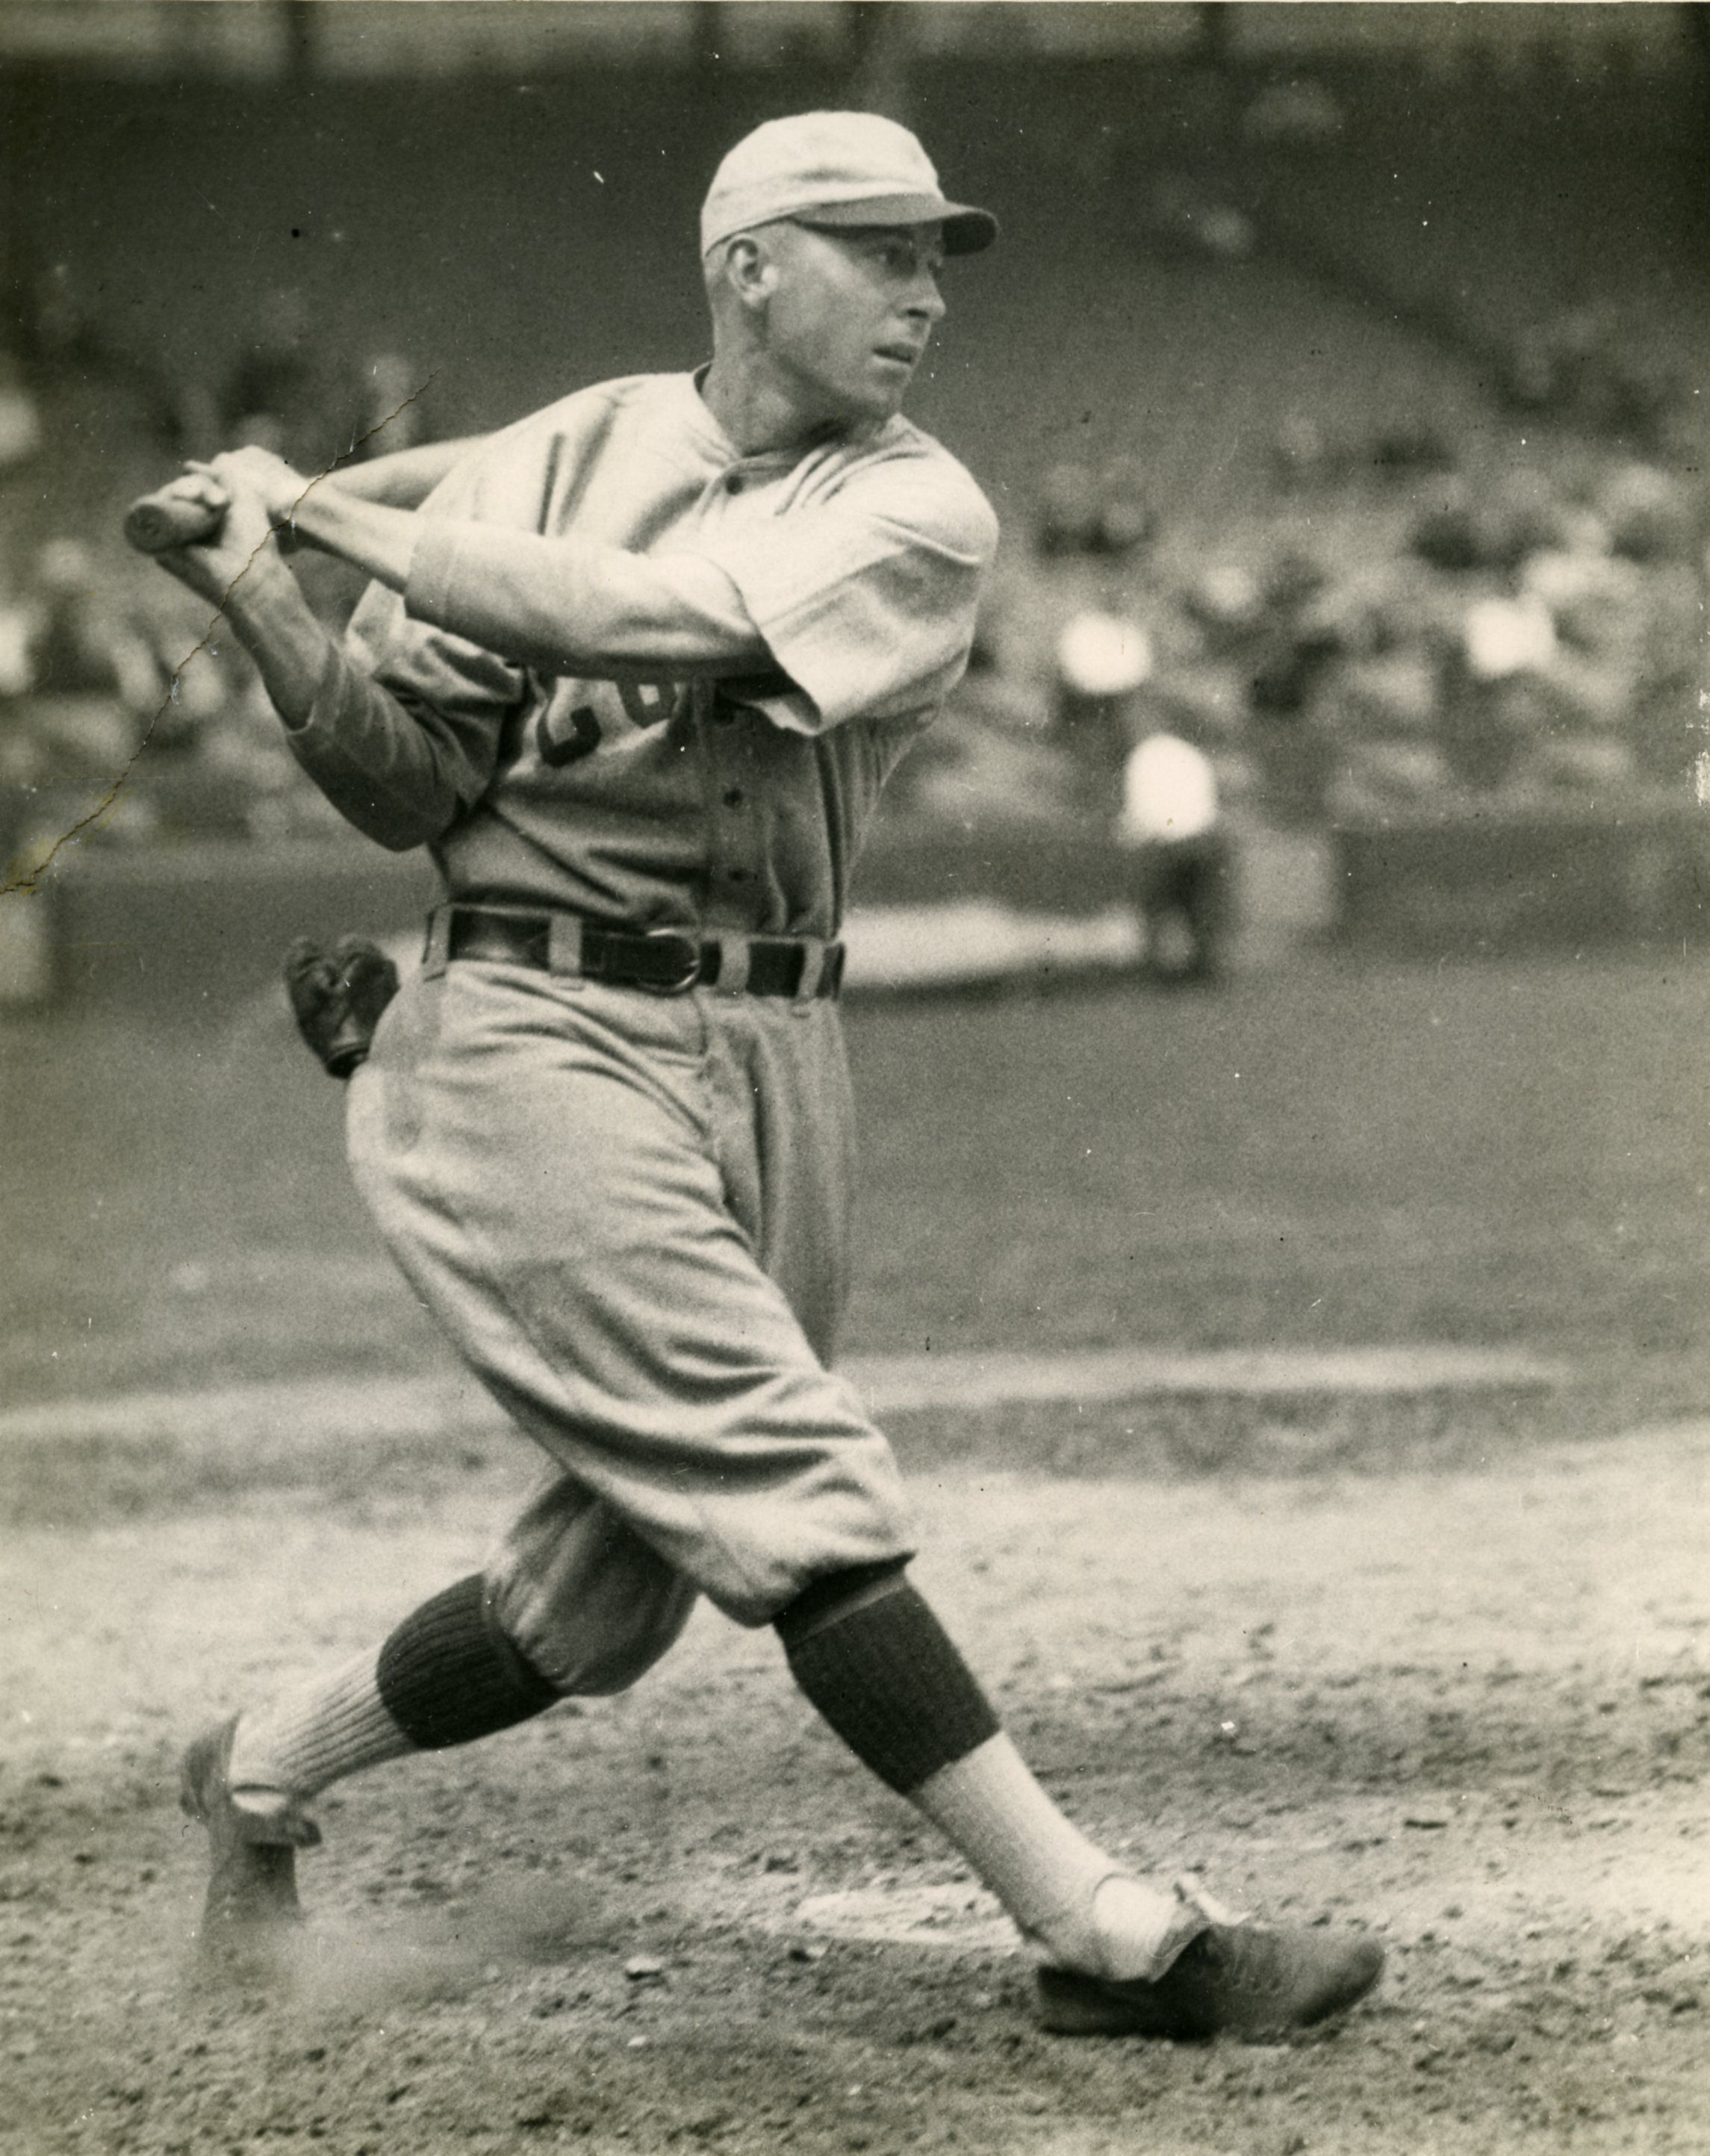 Charlie Hollocher Chicago Cubs (1920) National